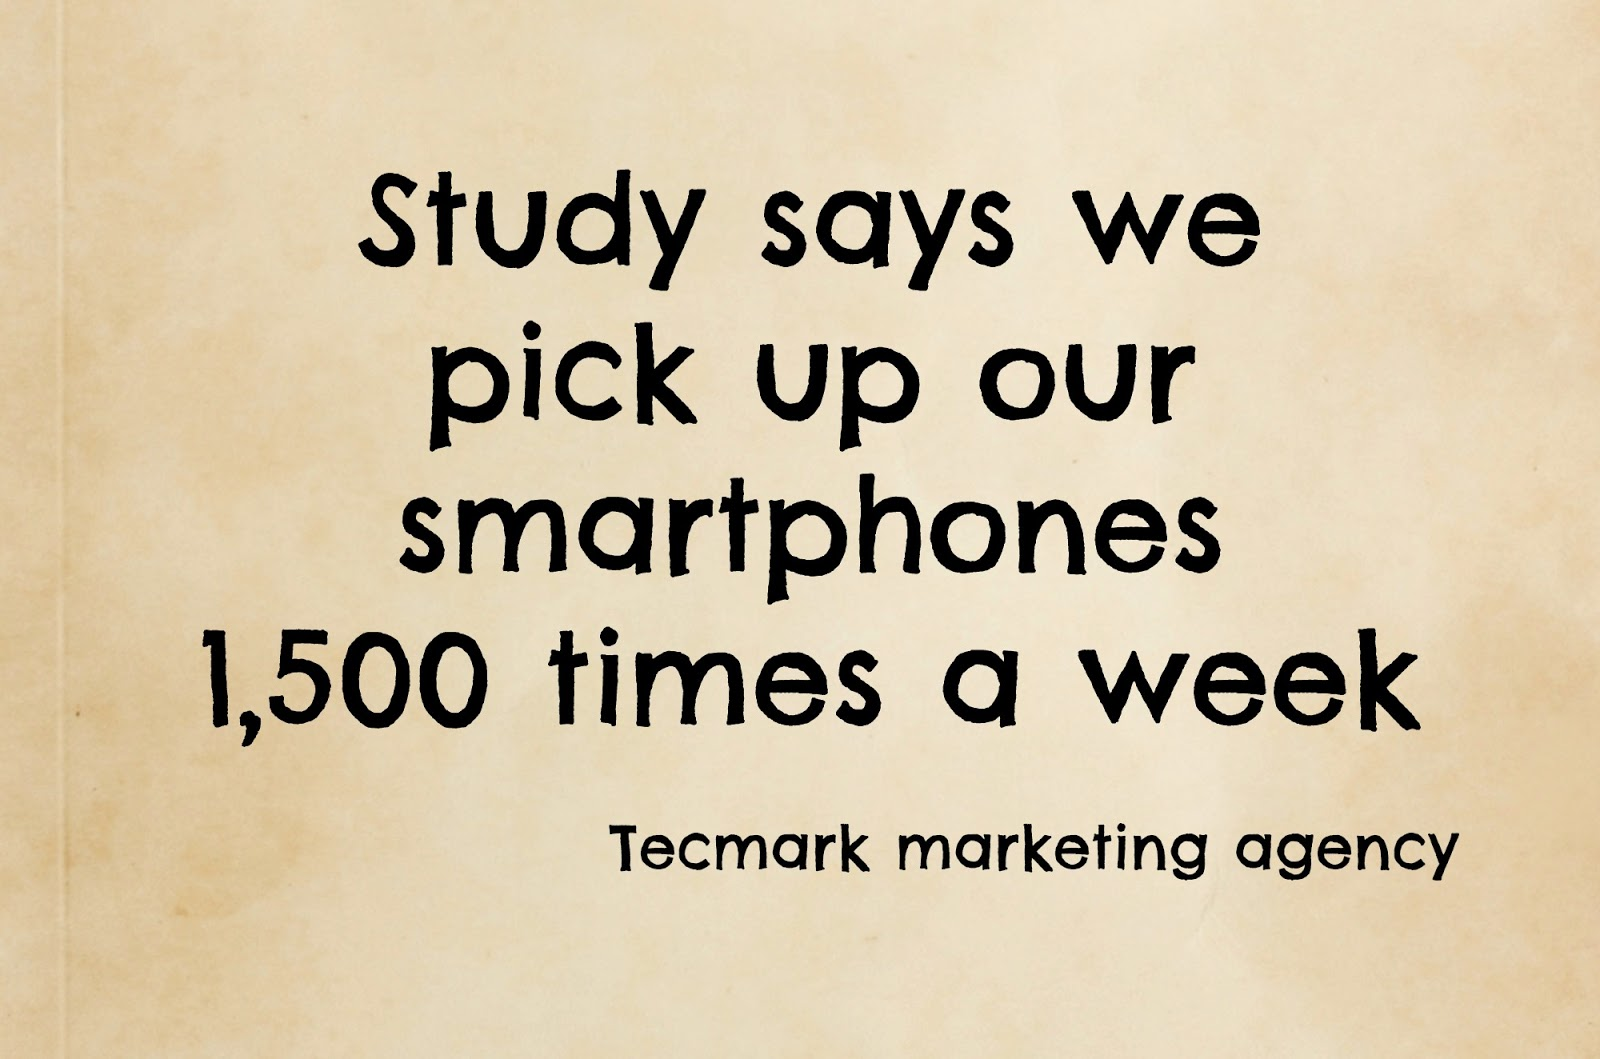 Take a Tech Timeout in 3 Easy Steps - Study says we pick up our smartphones 1500 times a week